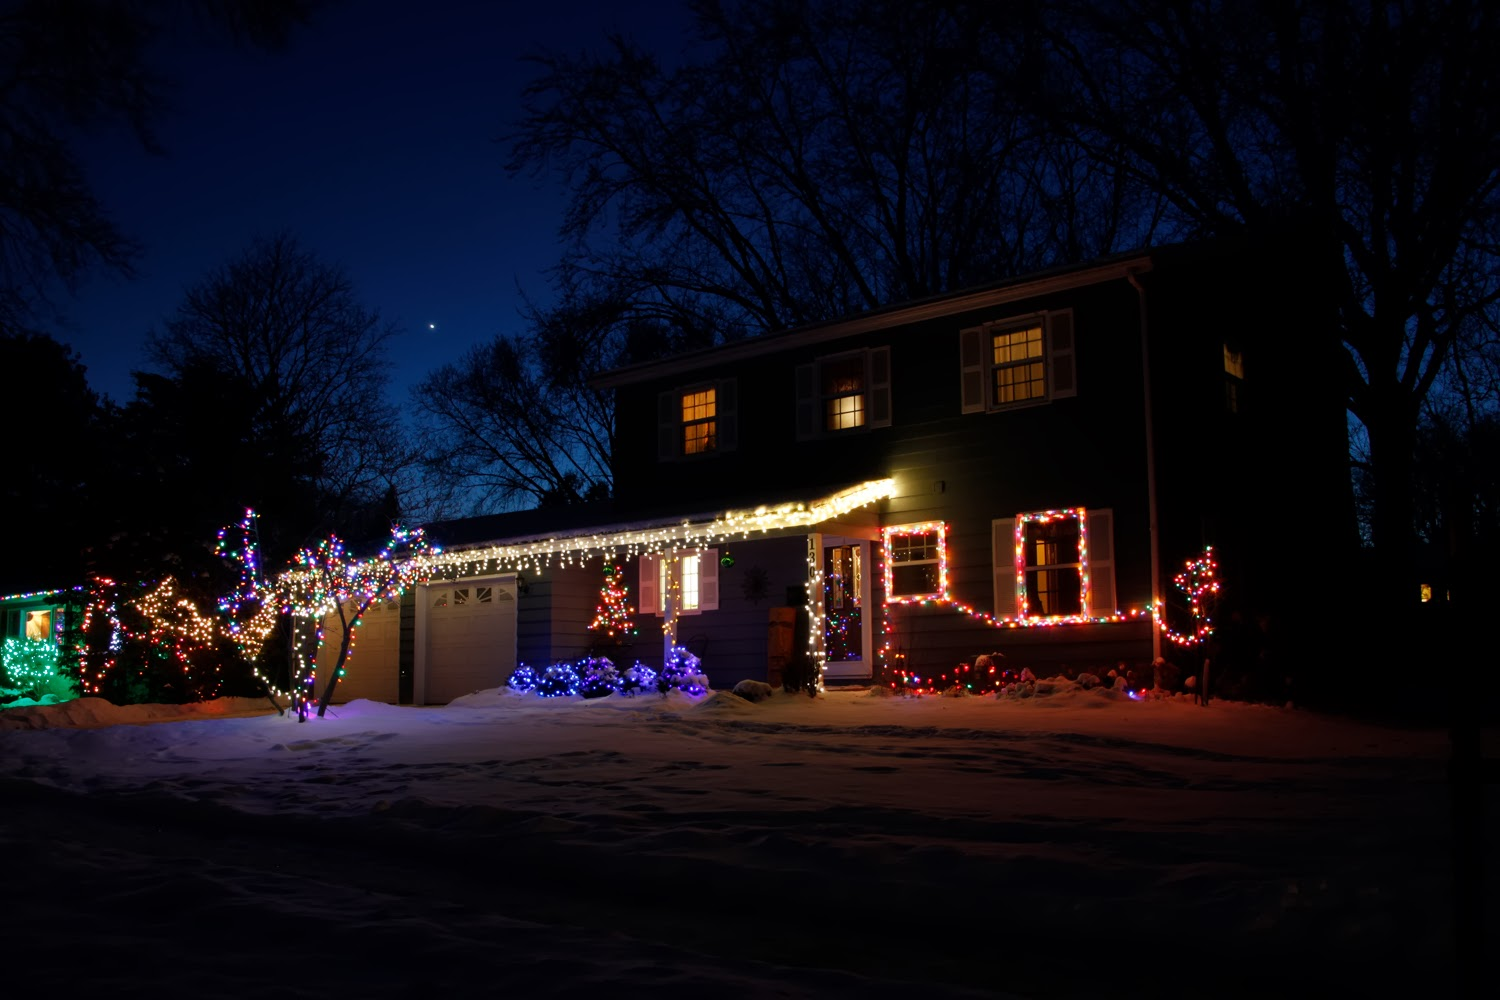 holiday lights, Christmas lights, photography, how to, blue hour